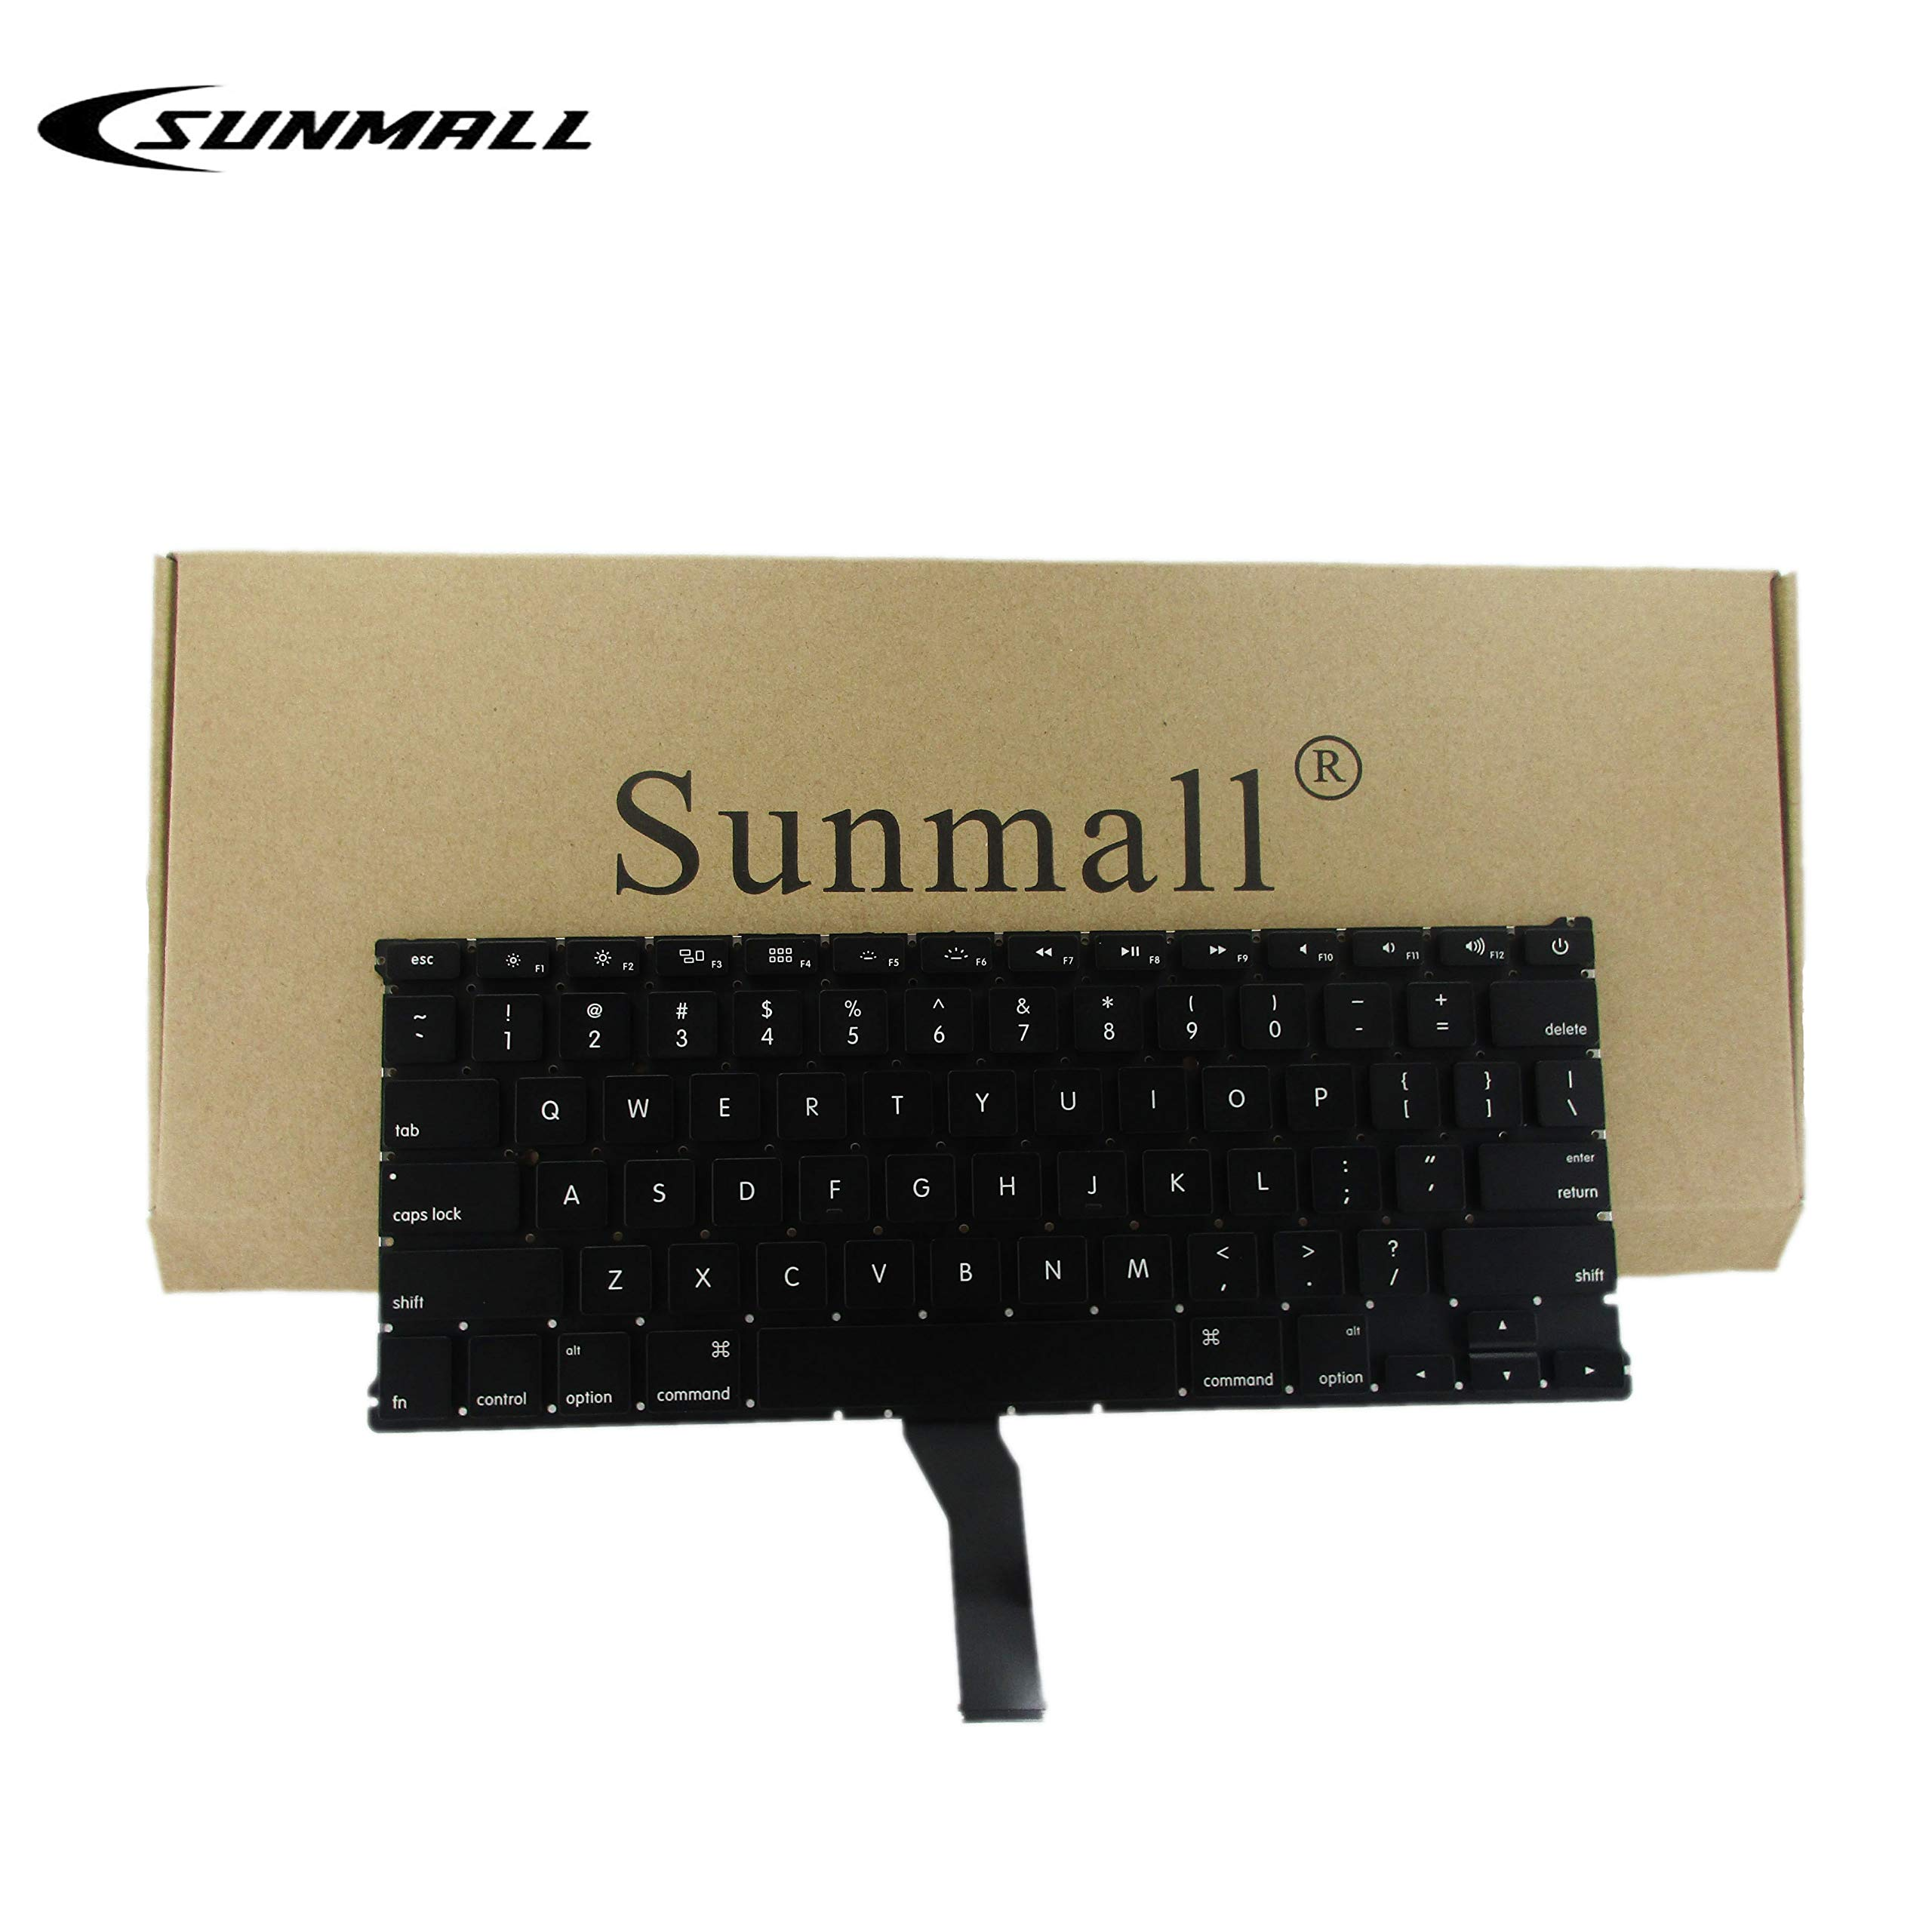 SUNMALL Backlight Backlit Keyboard Replacement for Apple MacBook Air 13'' A1369 (2011) A1466 (2012-2015) MJVE2LL/A MD760LL/A MC965LL/A MD231LL/A MJVG2LL/A Series Laptop Keyboard (6 Months Warranty)